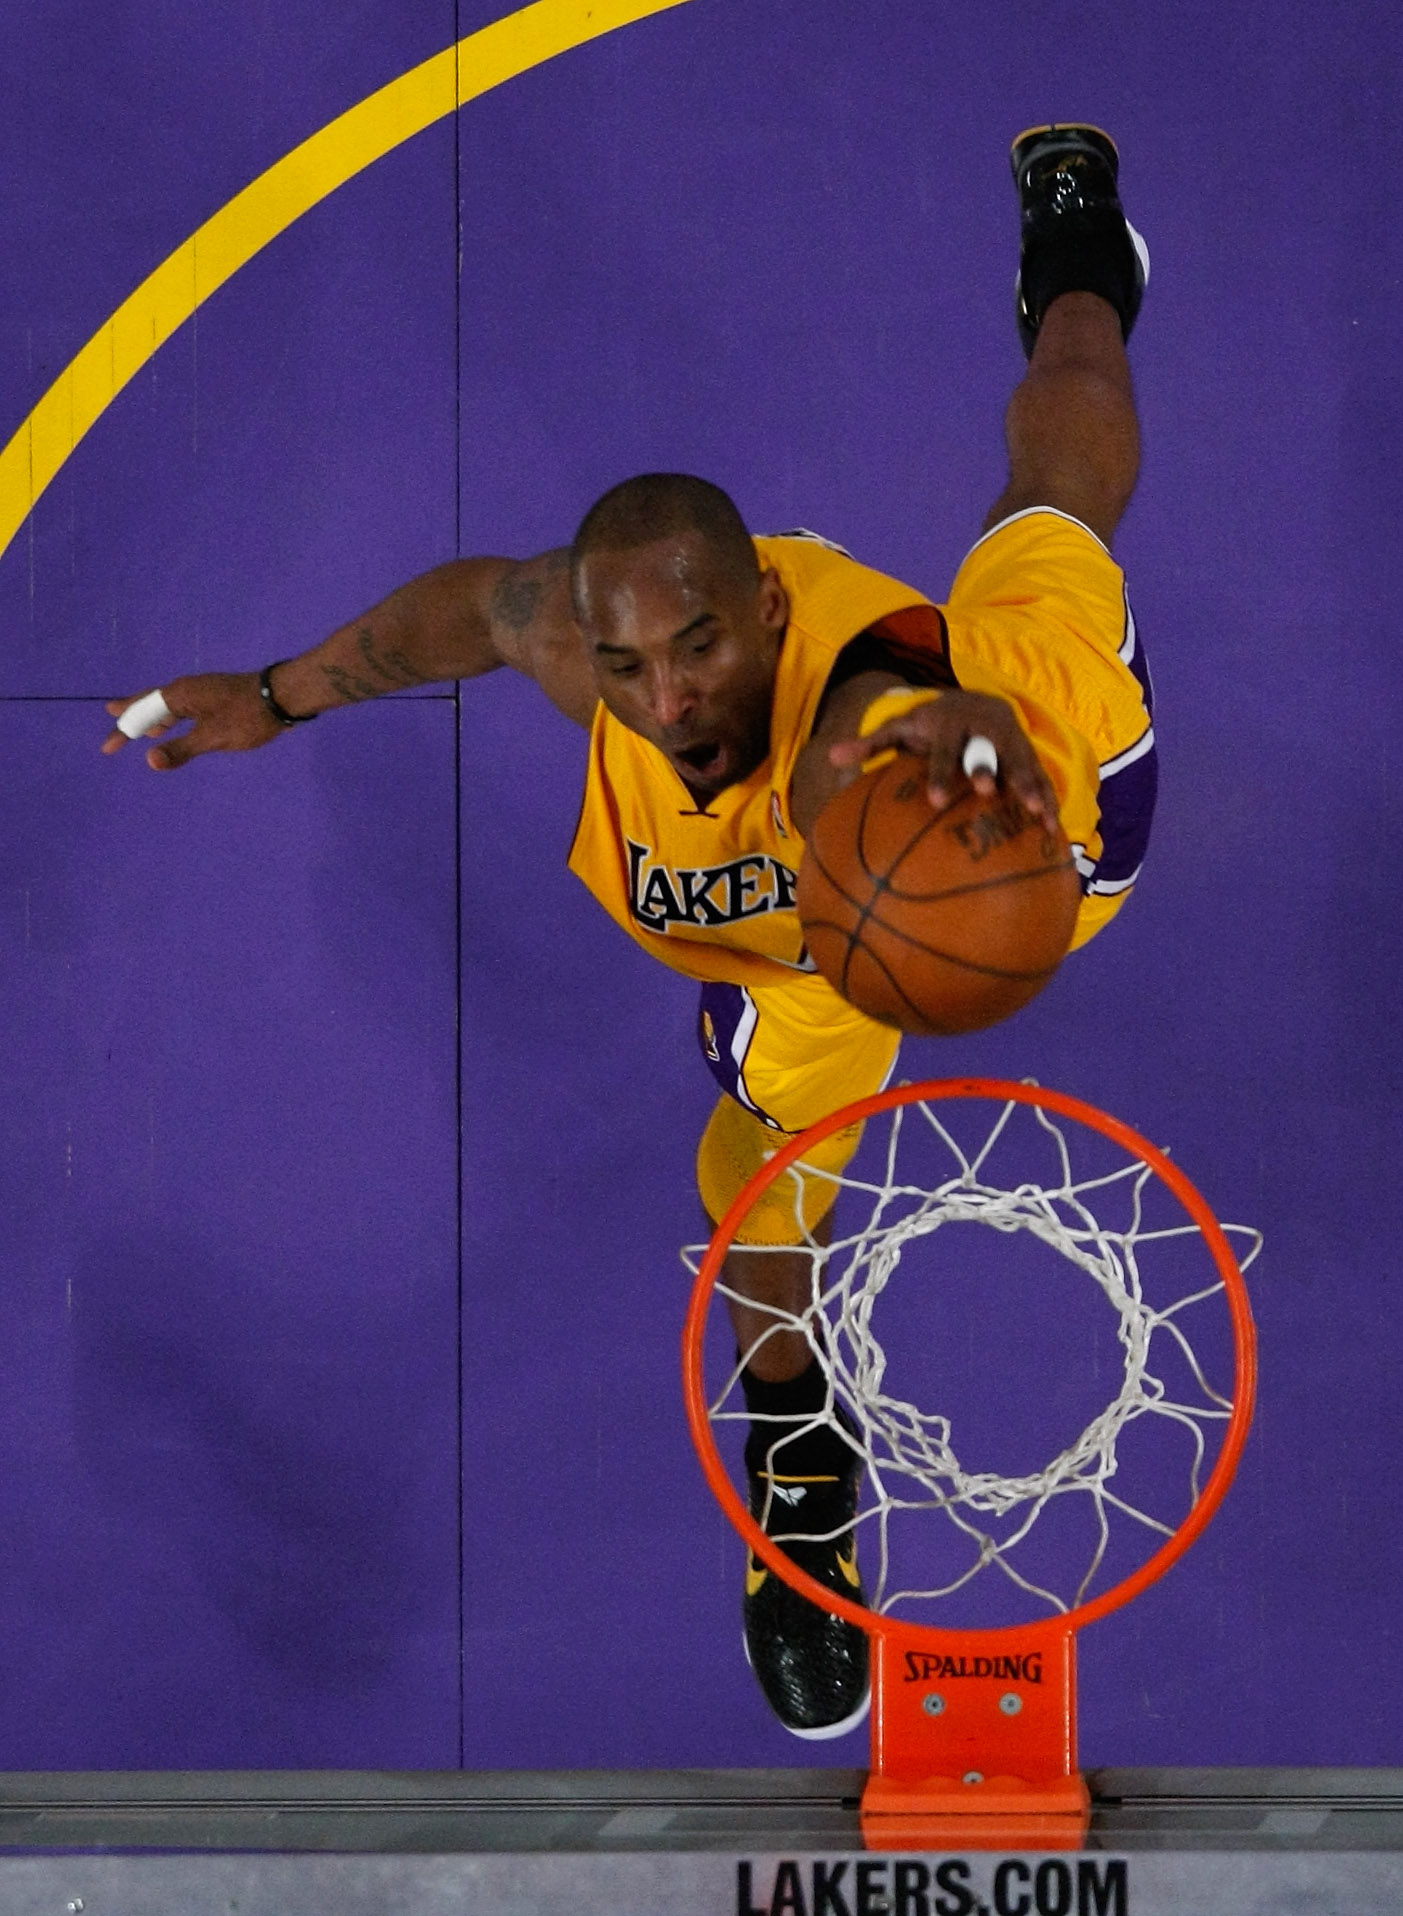 LOS ANGELES, CA - APRIL 26:  Kobe Bryant #24 of the Los Angeles Lakers dunks the ball with his left hand in the lane in the third quarter against the New Orleans Hornets in Game Five of the Western Conference Quarterfinals in the 2011 NBA Playoffs on Apri